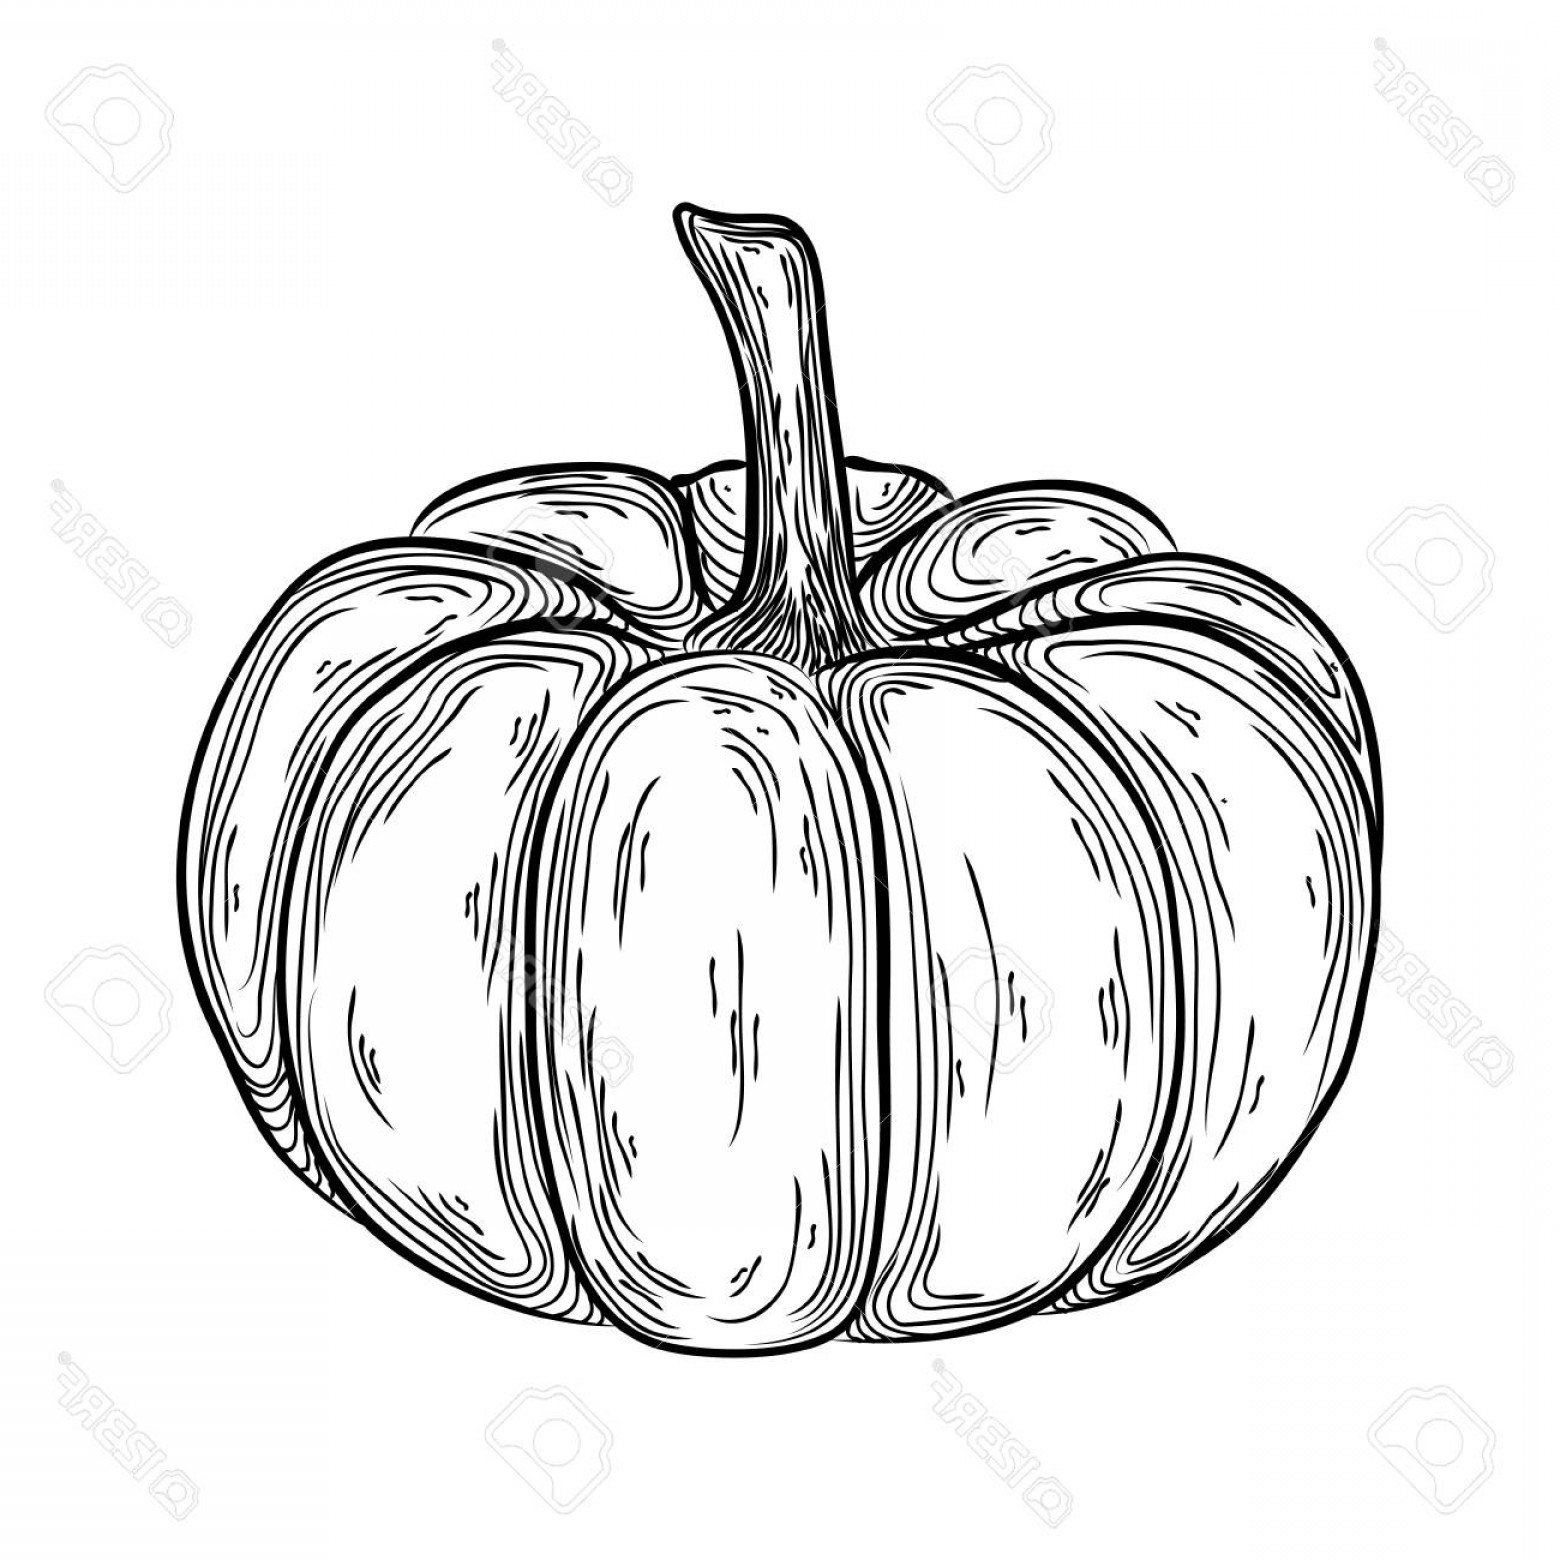 Pumpkin Outline Vector Art: Photostock Vector Autumn Pumpkin Outline Hand Drawn Illustration Graphic Icon Linear Drawing